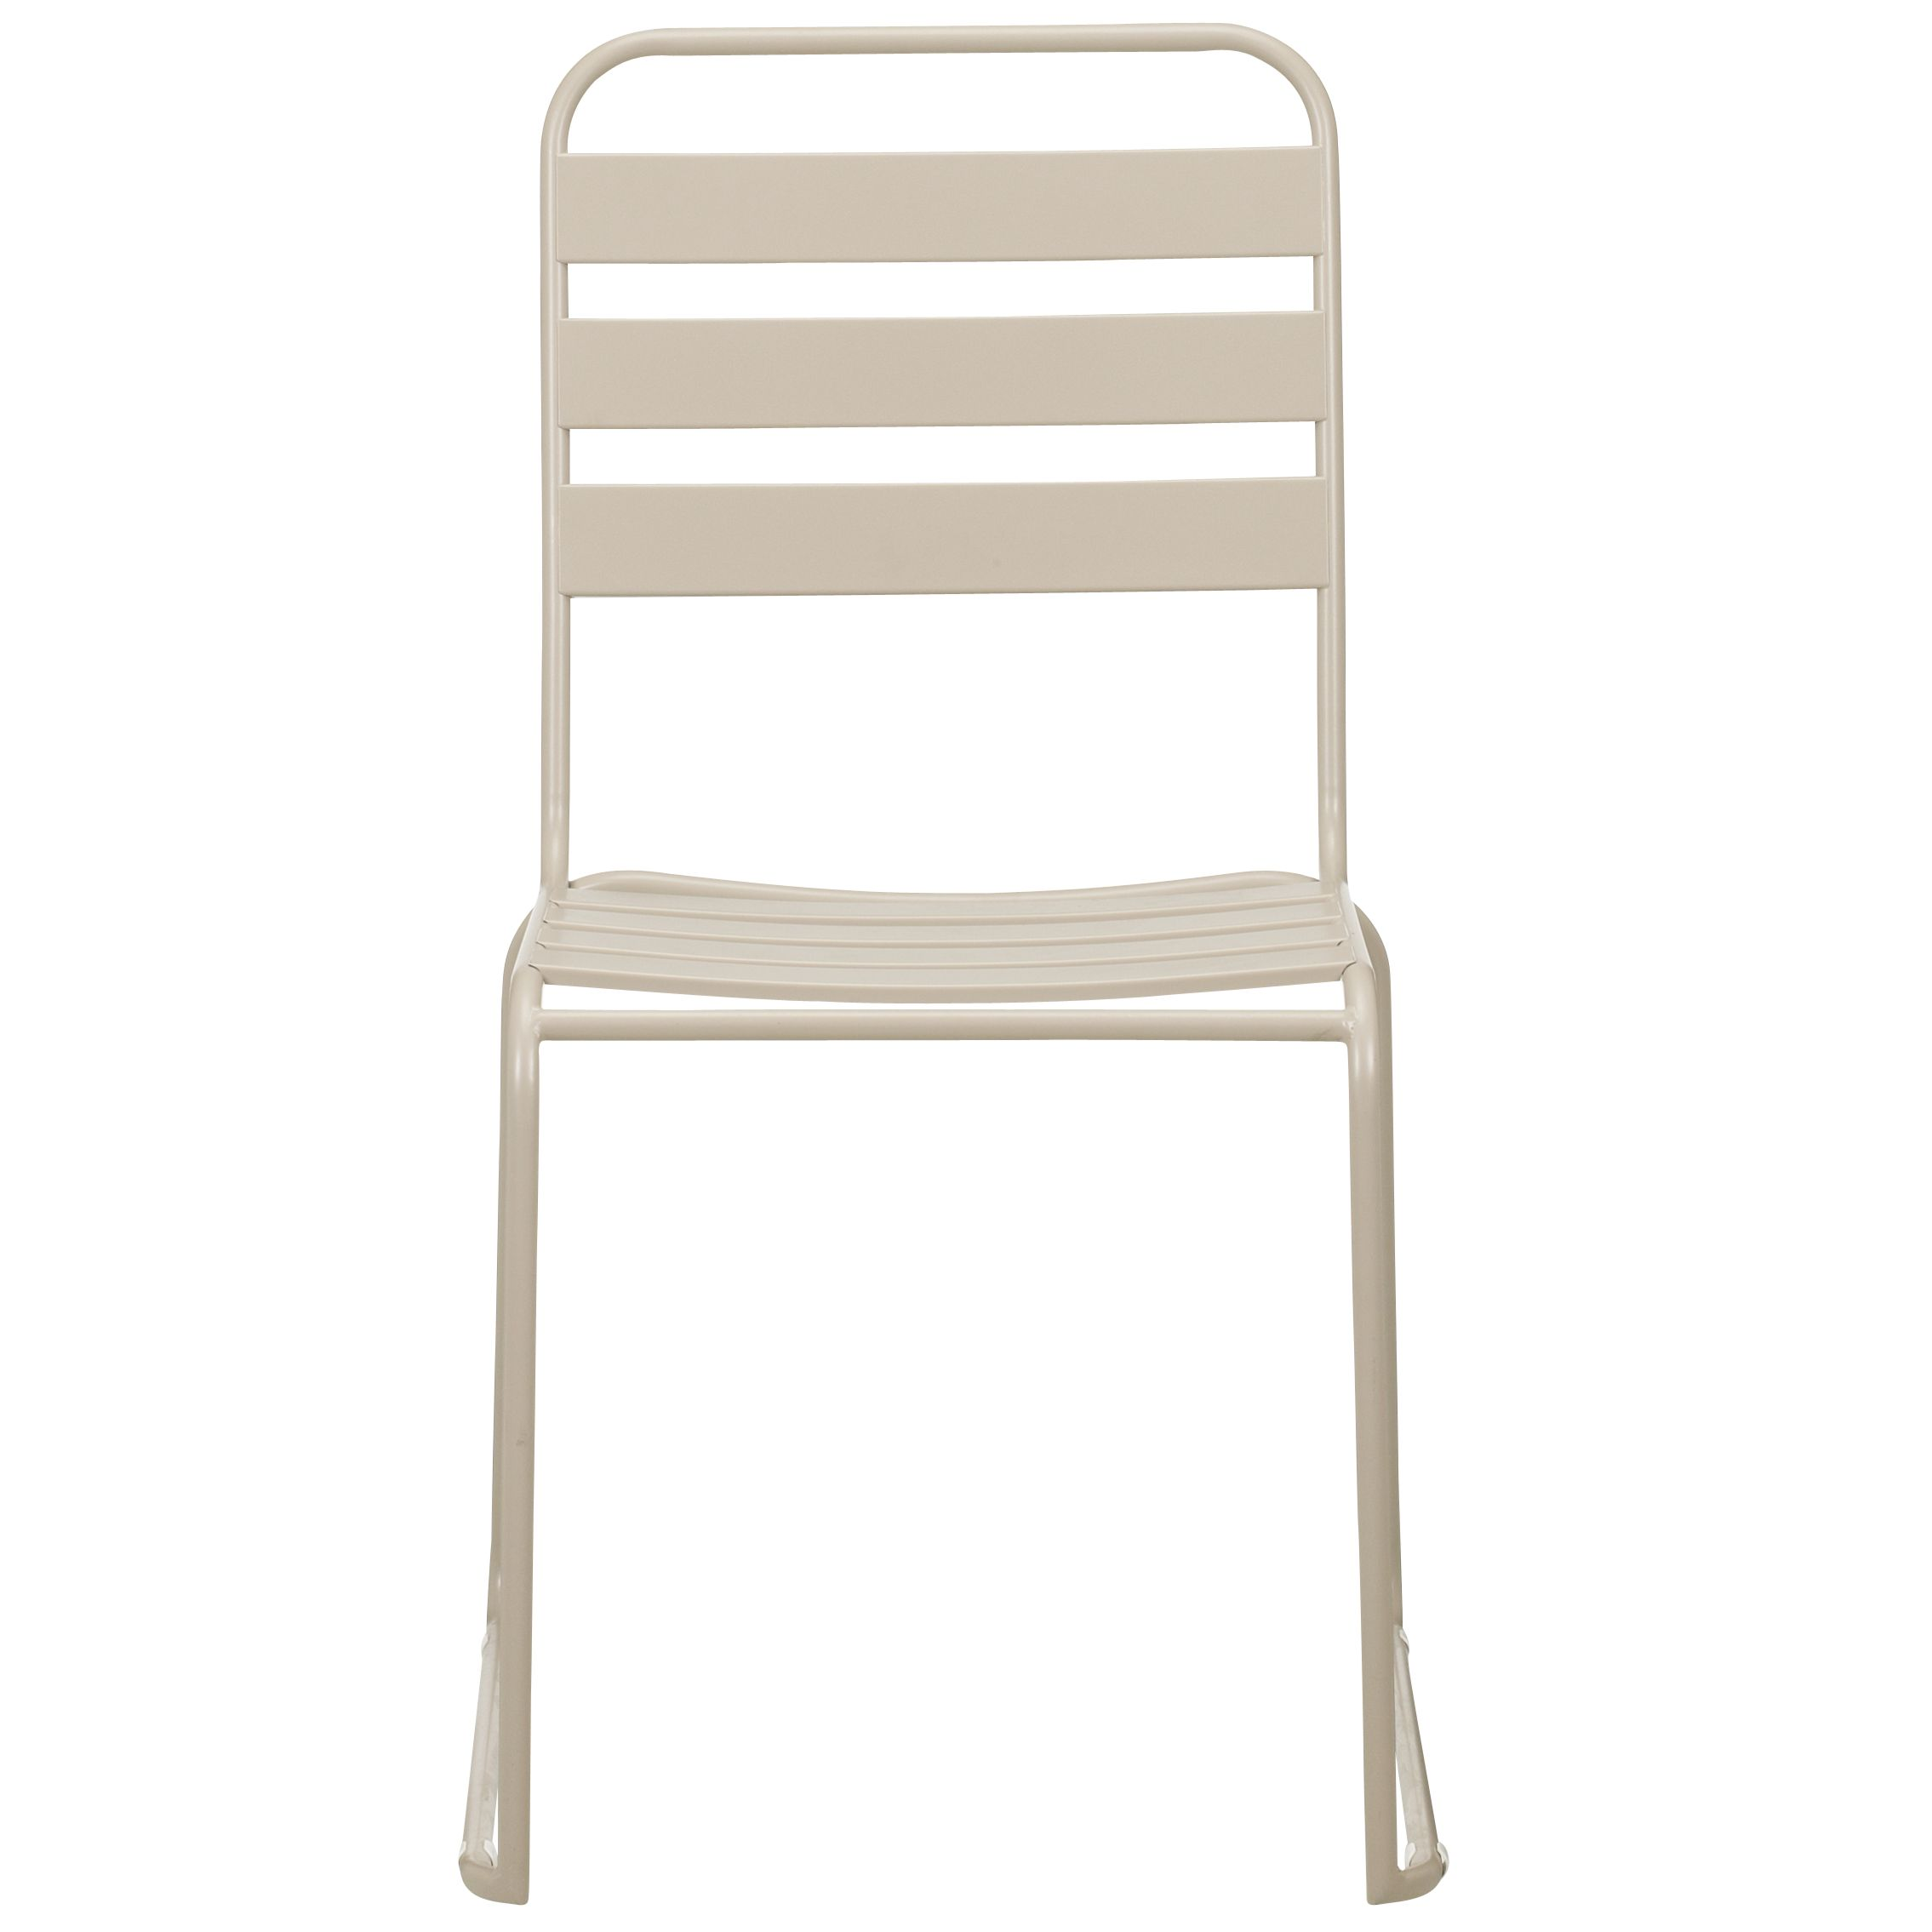 John Lewis Mocha Outdoor Dining Chair, Set of 6